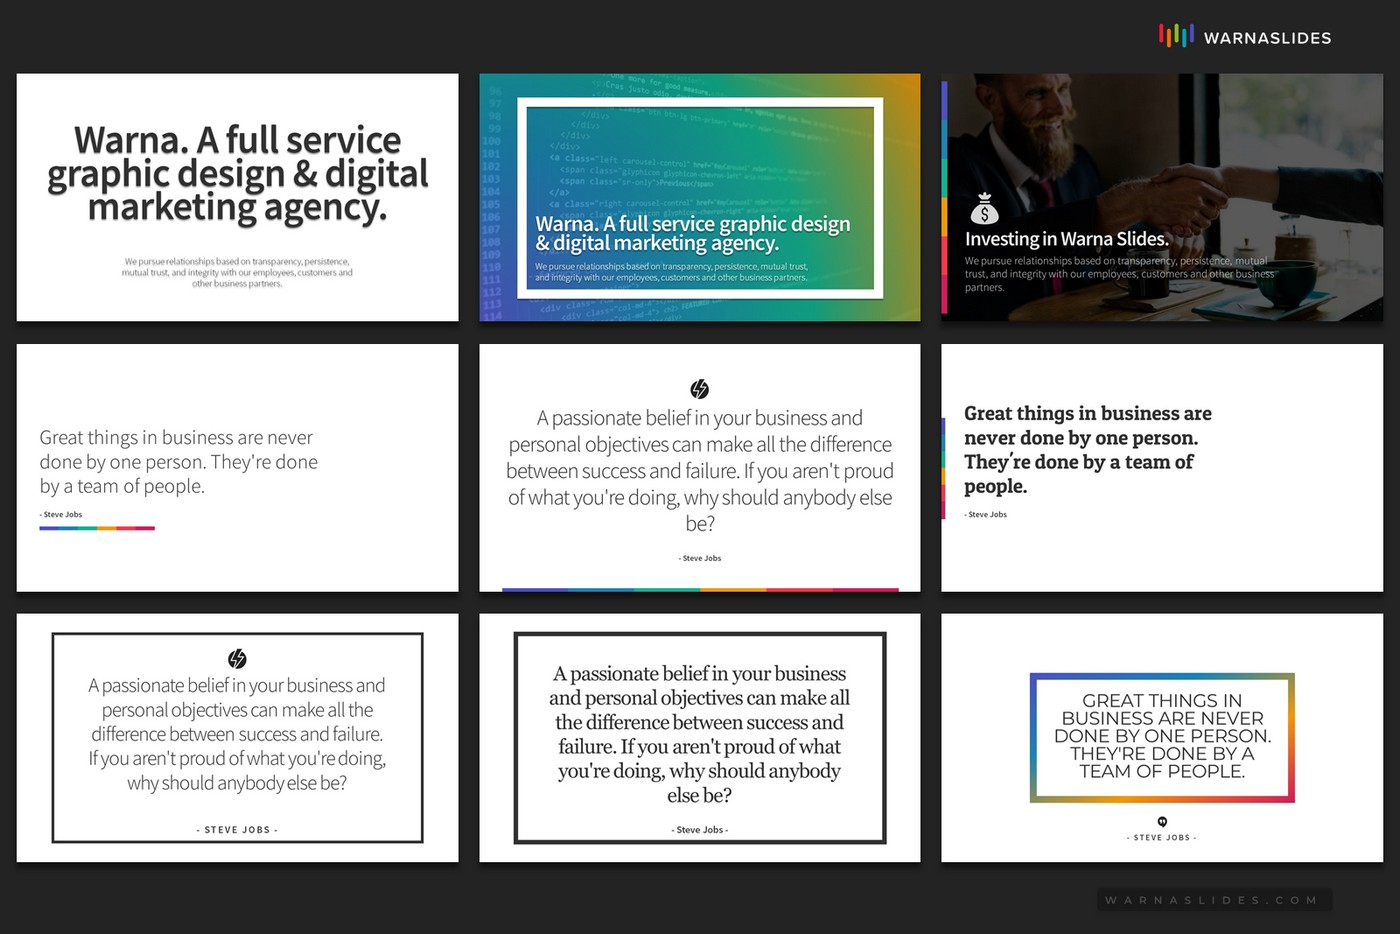 Section-Breaker-Quotes-Social-Media-PowerPoint-Template-for-Business-Pitch-Deck-Professional-Creative-PowerPoint-Icons-009